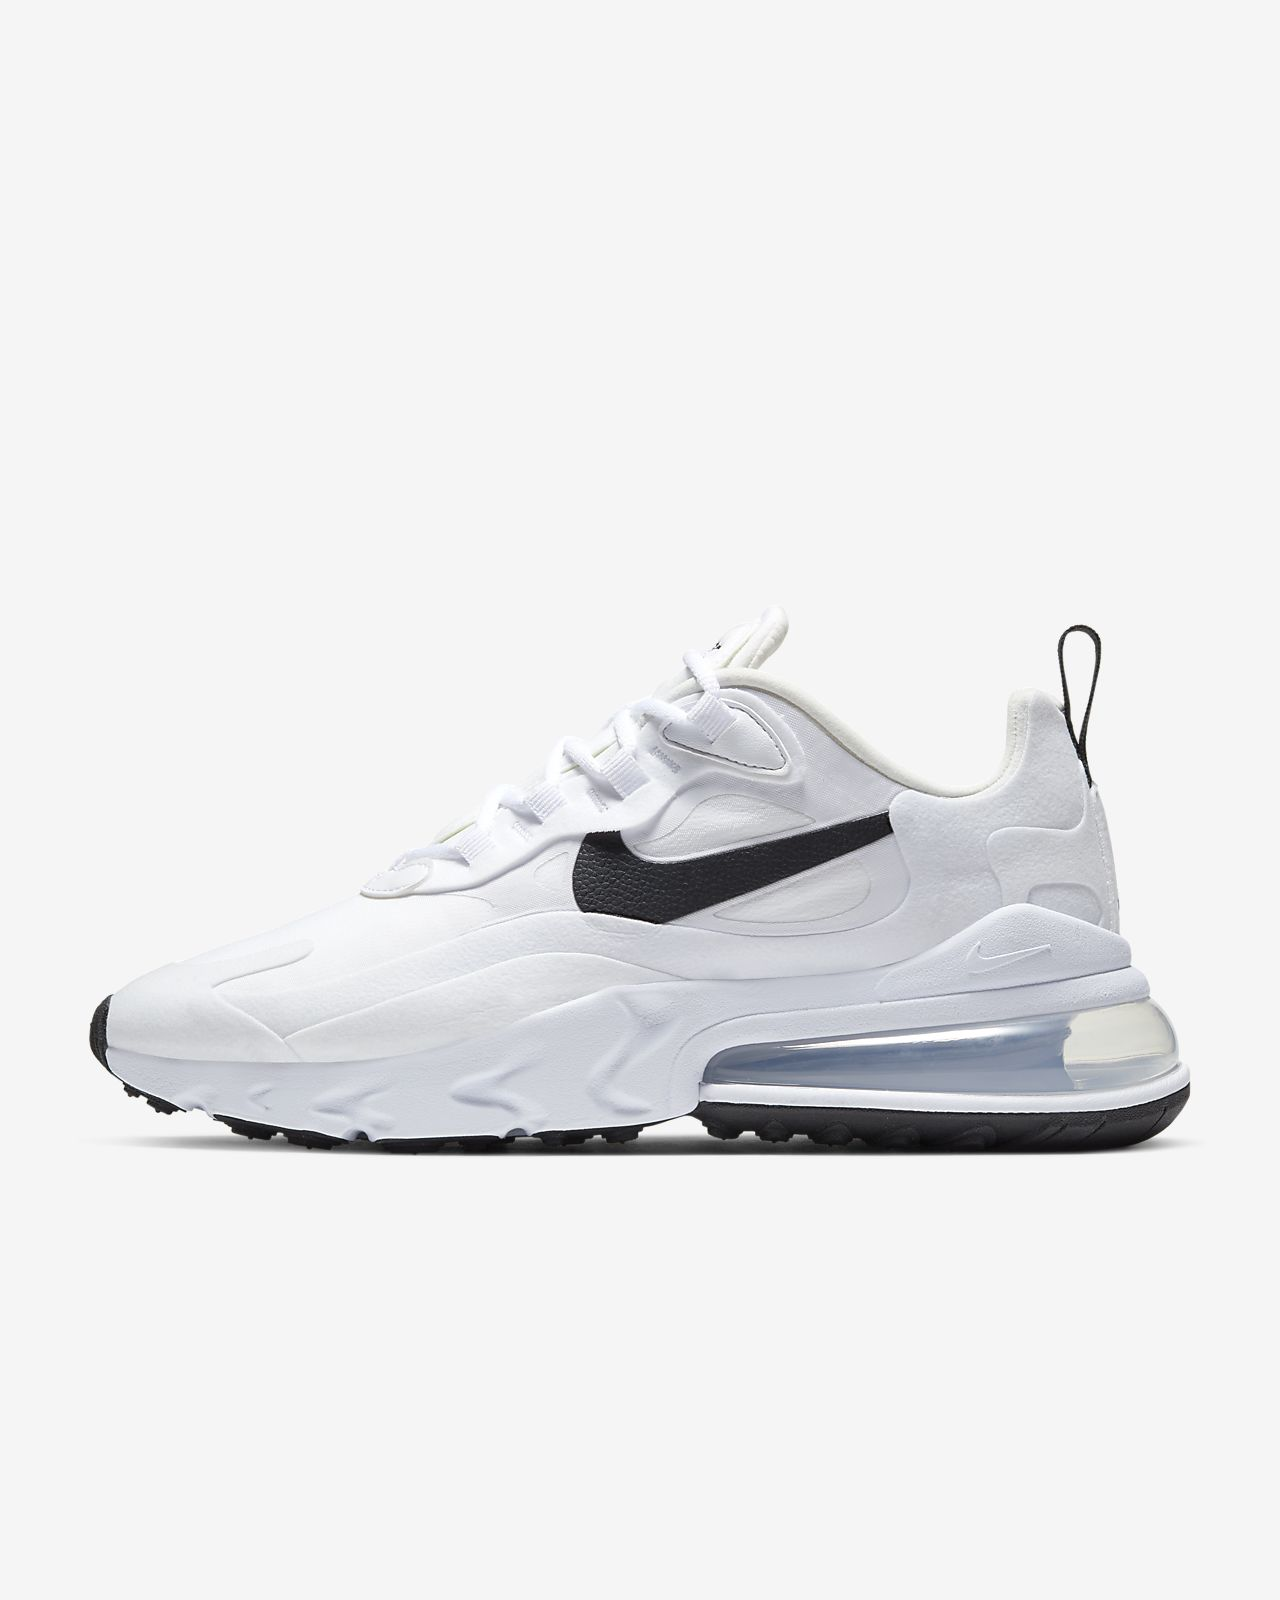 air max 270 react white